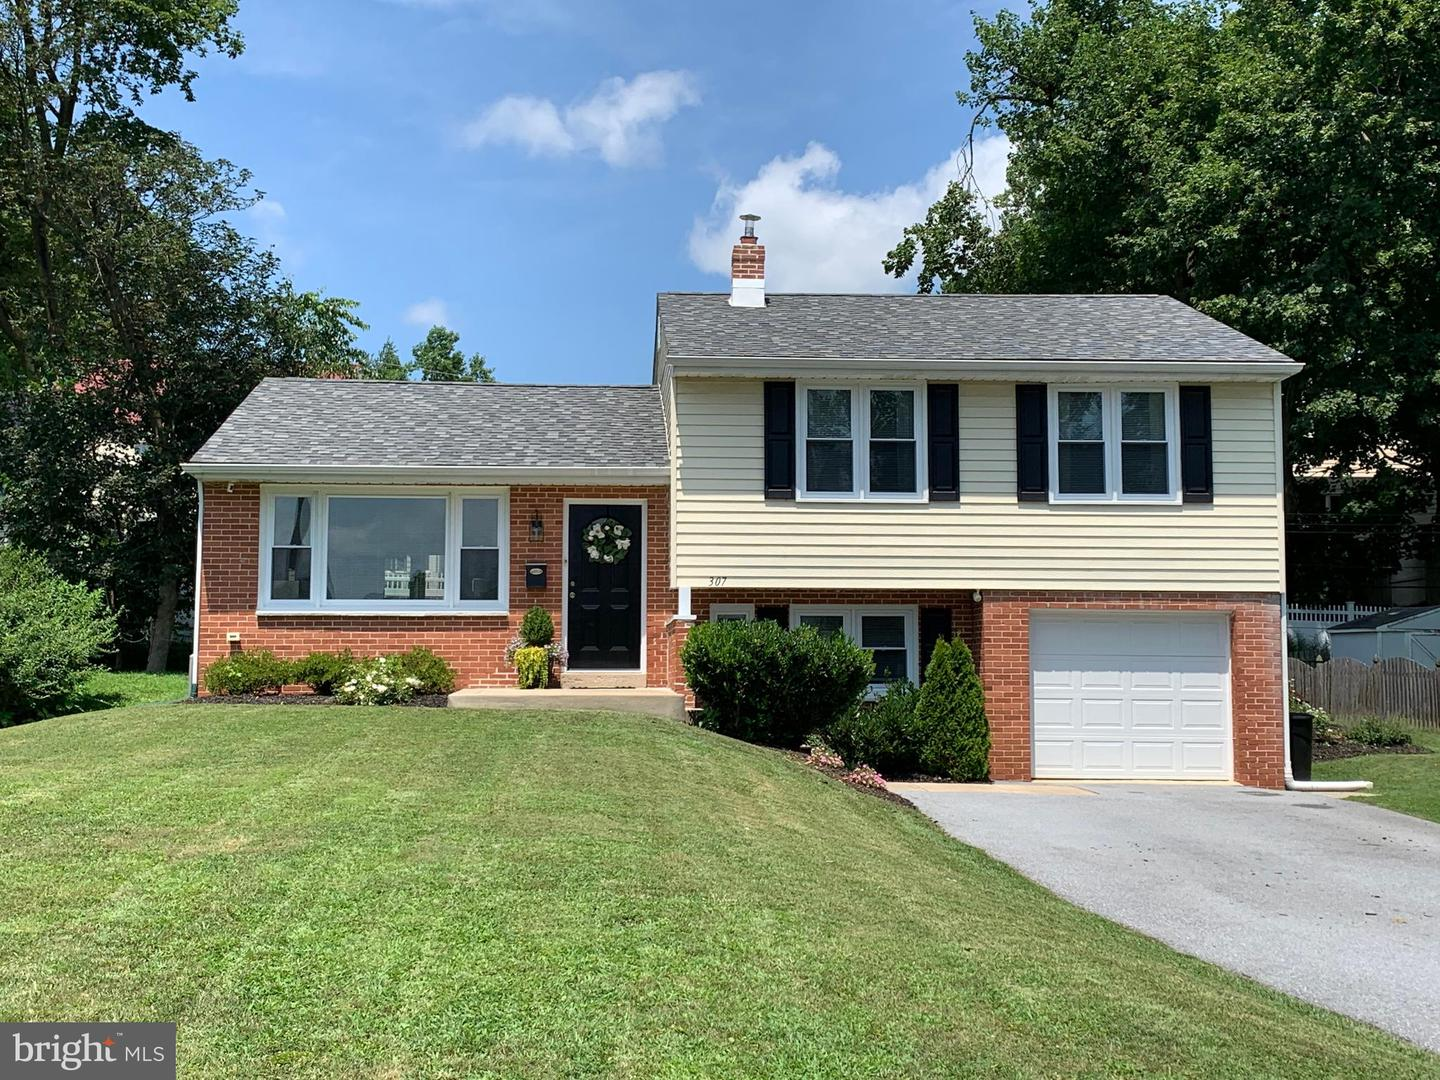 307 W Marshall Street West Chester, PA 19380